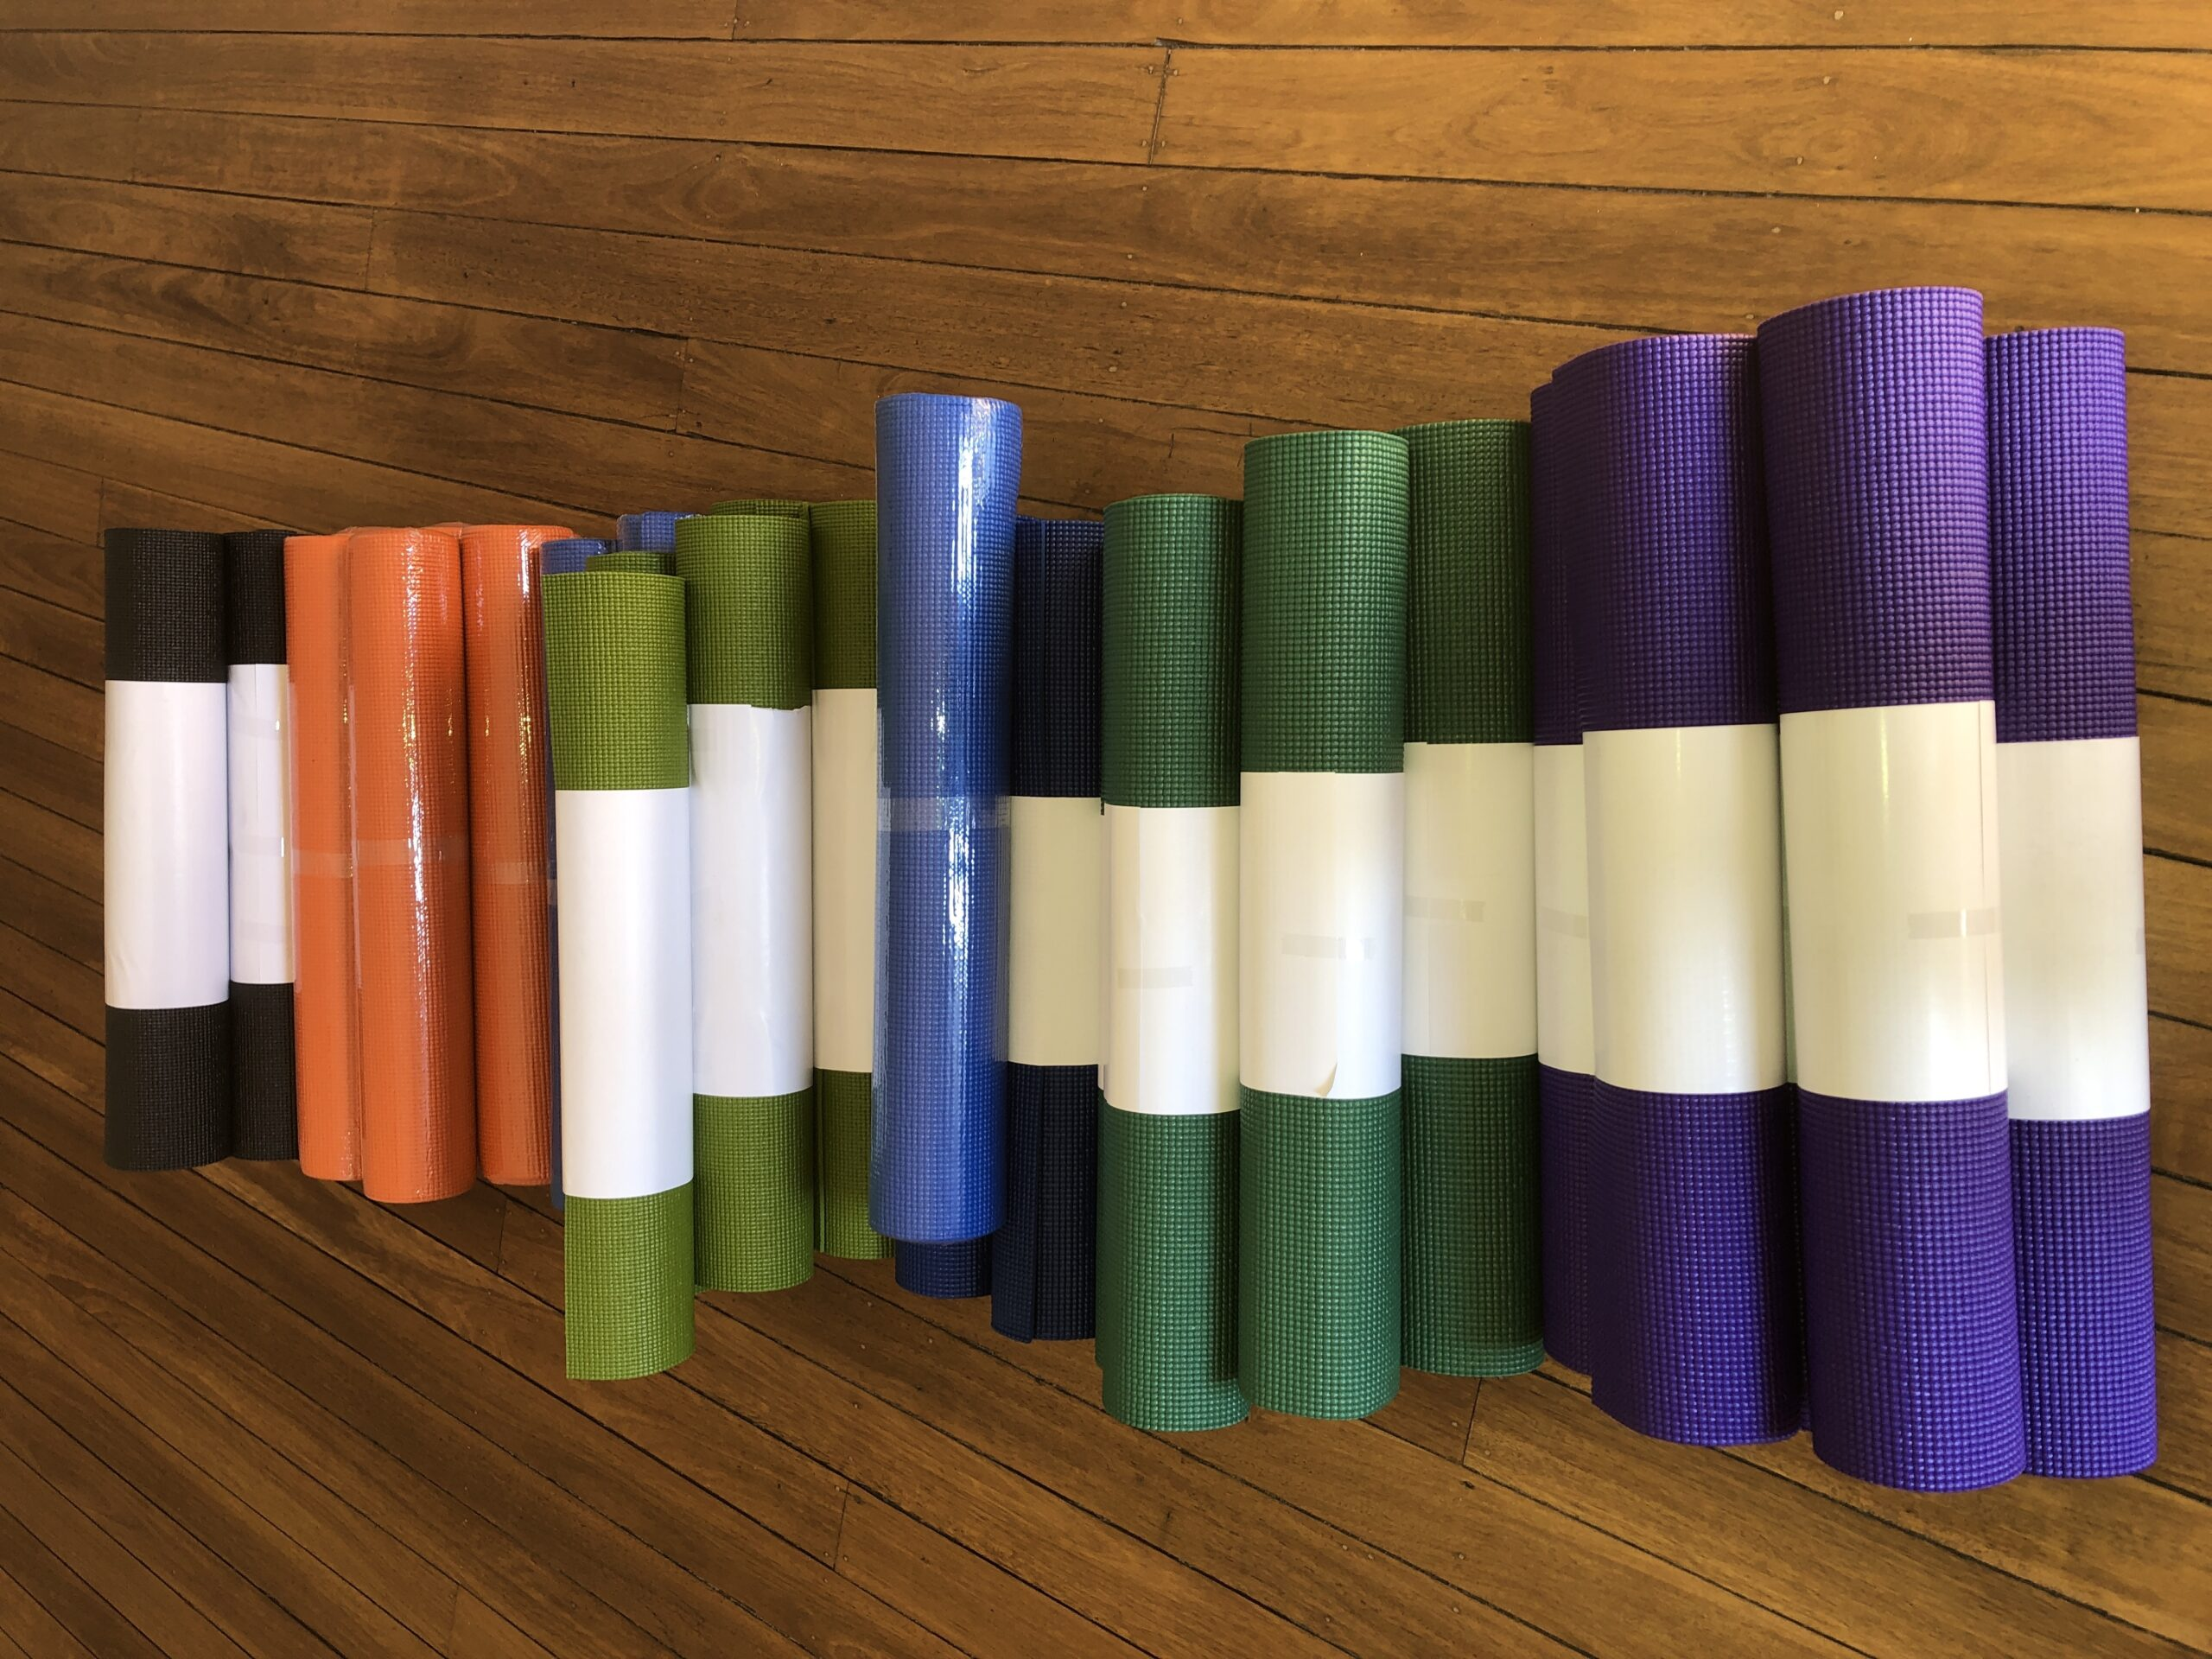 Yoga mats for Sale at Hamilton Yoga Iyengar School in Newcastle New South Wales